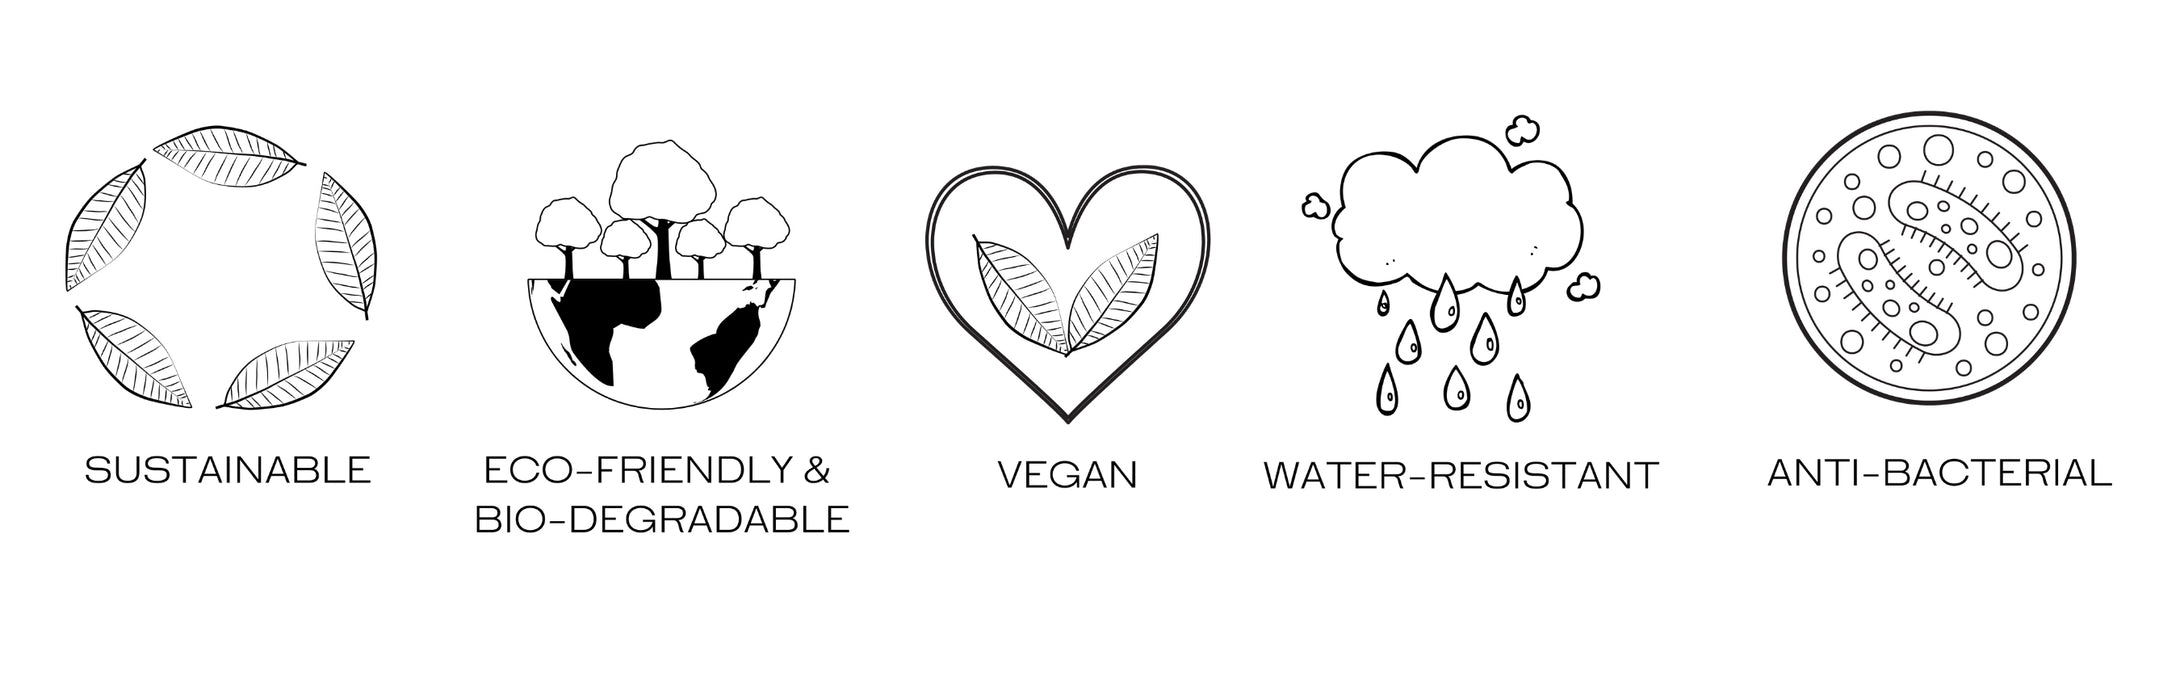 Sustainable, Eco-friendly and Bio-degradable, Vegan, Water-resistant and Anti-bacterial logos